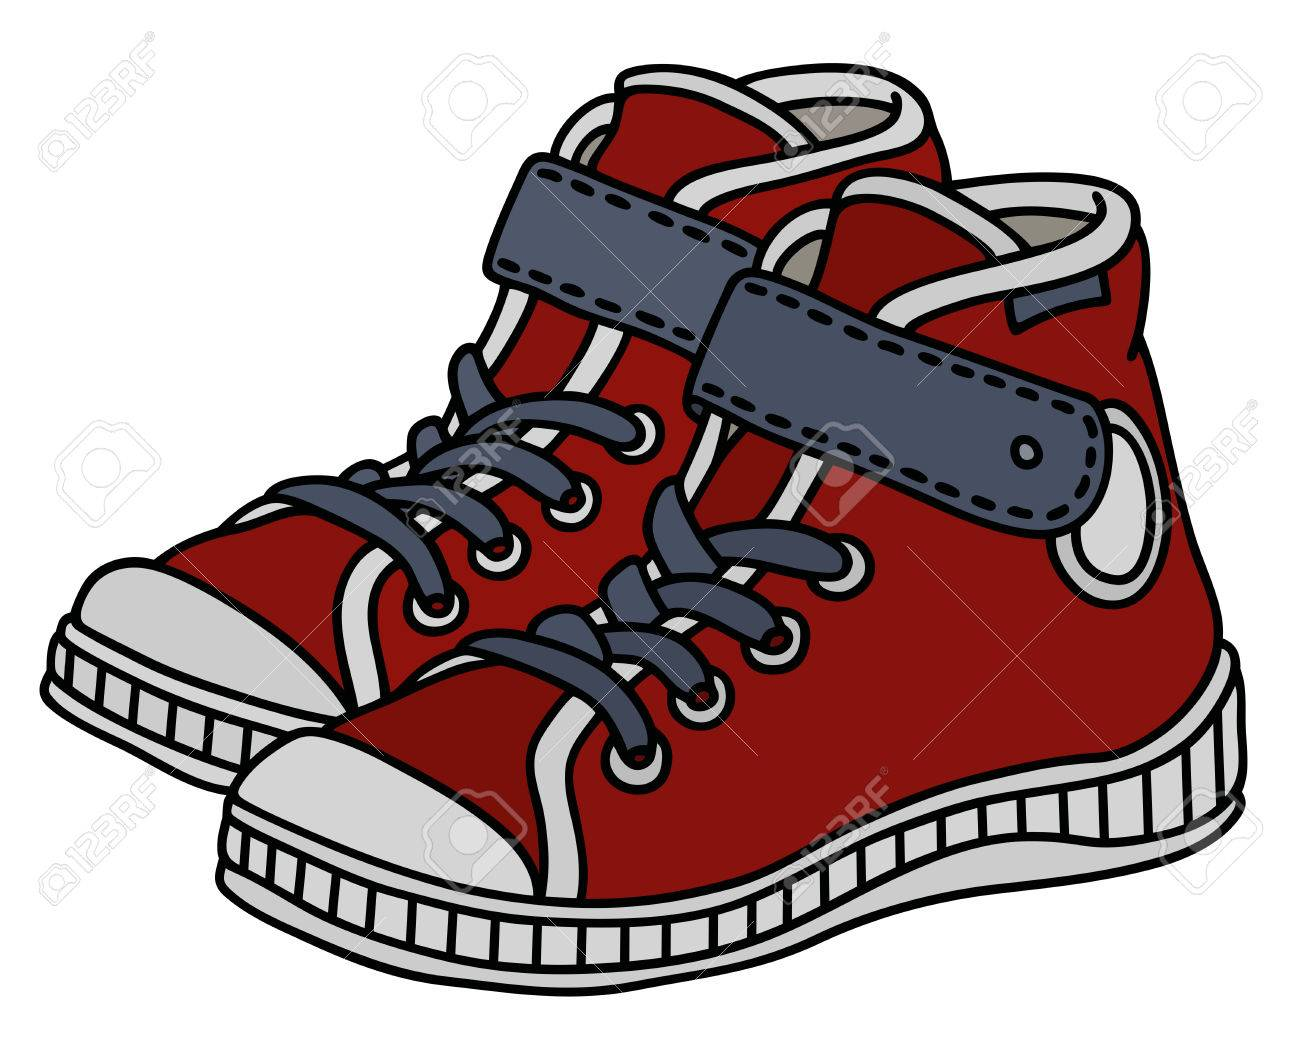 Red, white and gray childrens sneakers - 82742008